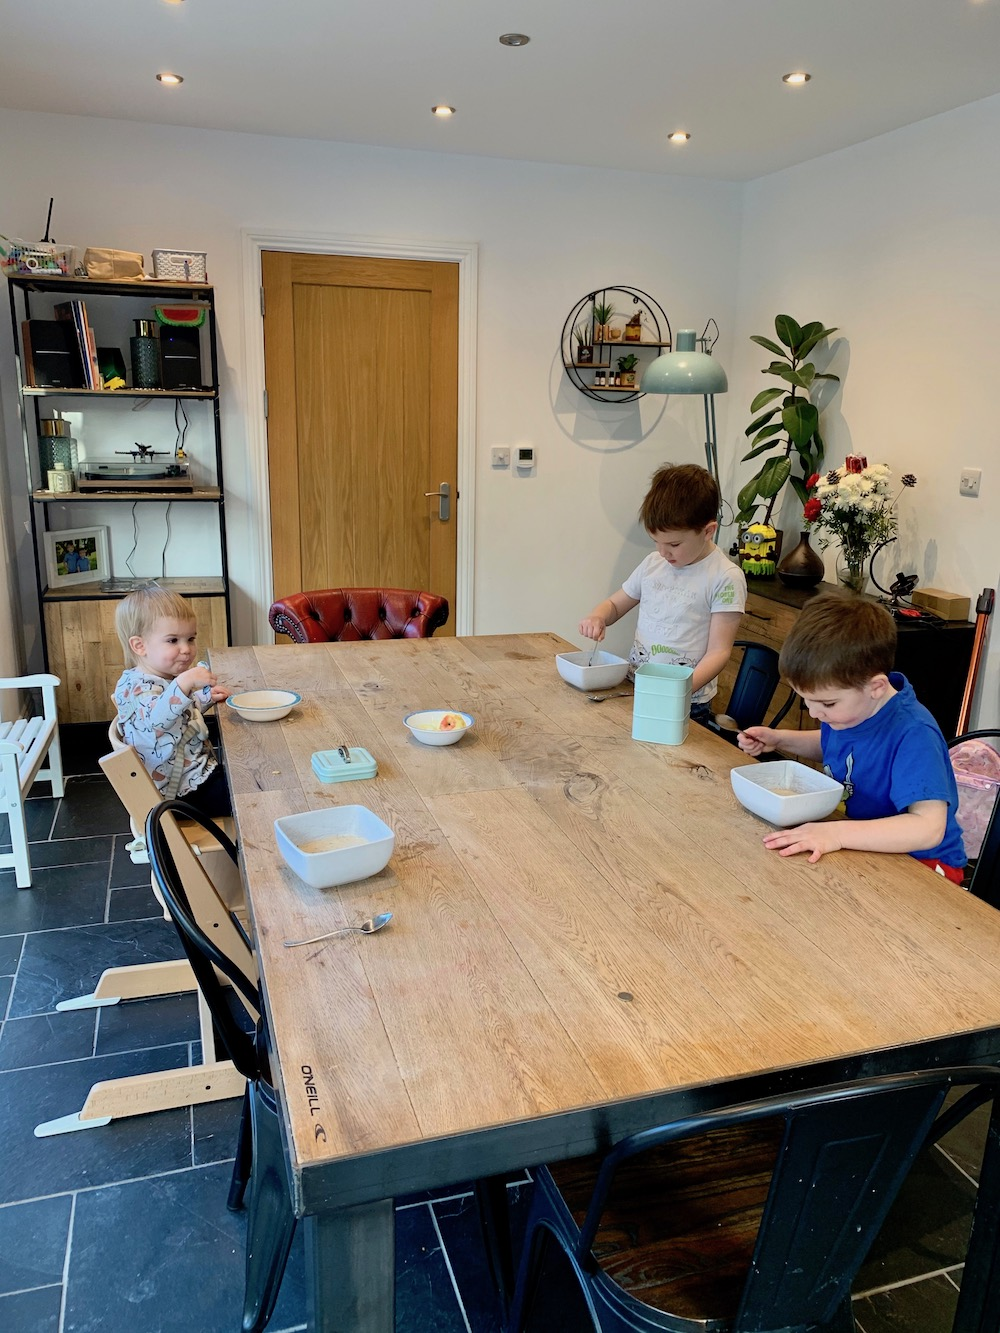 Our lockdown routine: Homeschooling and working from home with three kids